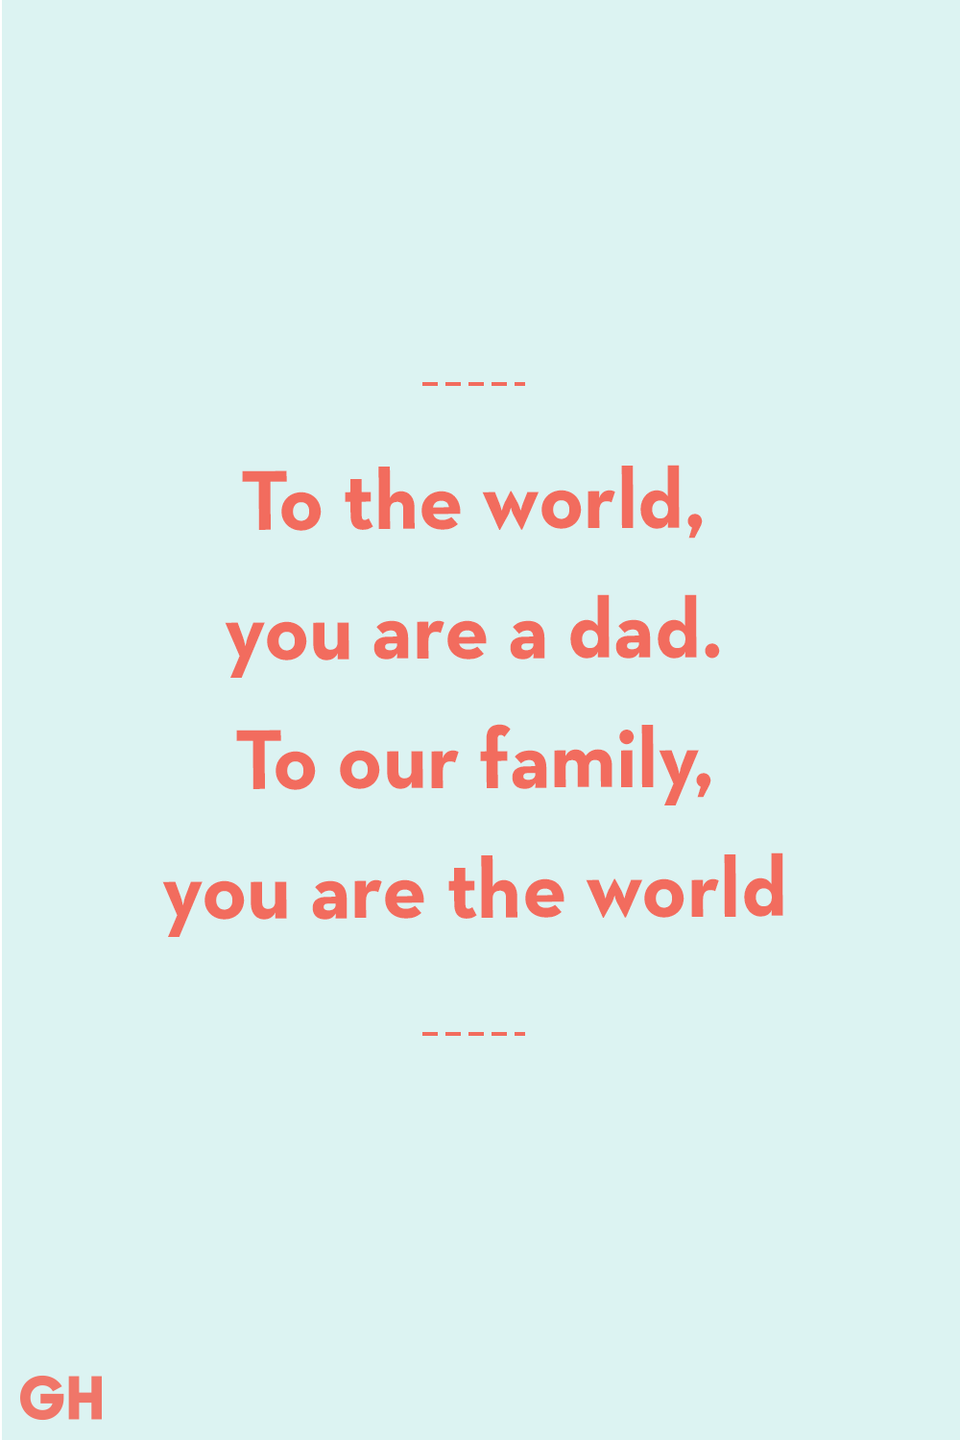 <p>To the world, you are a dad. To our family, you are the world.</p>